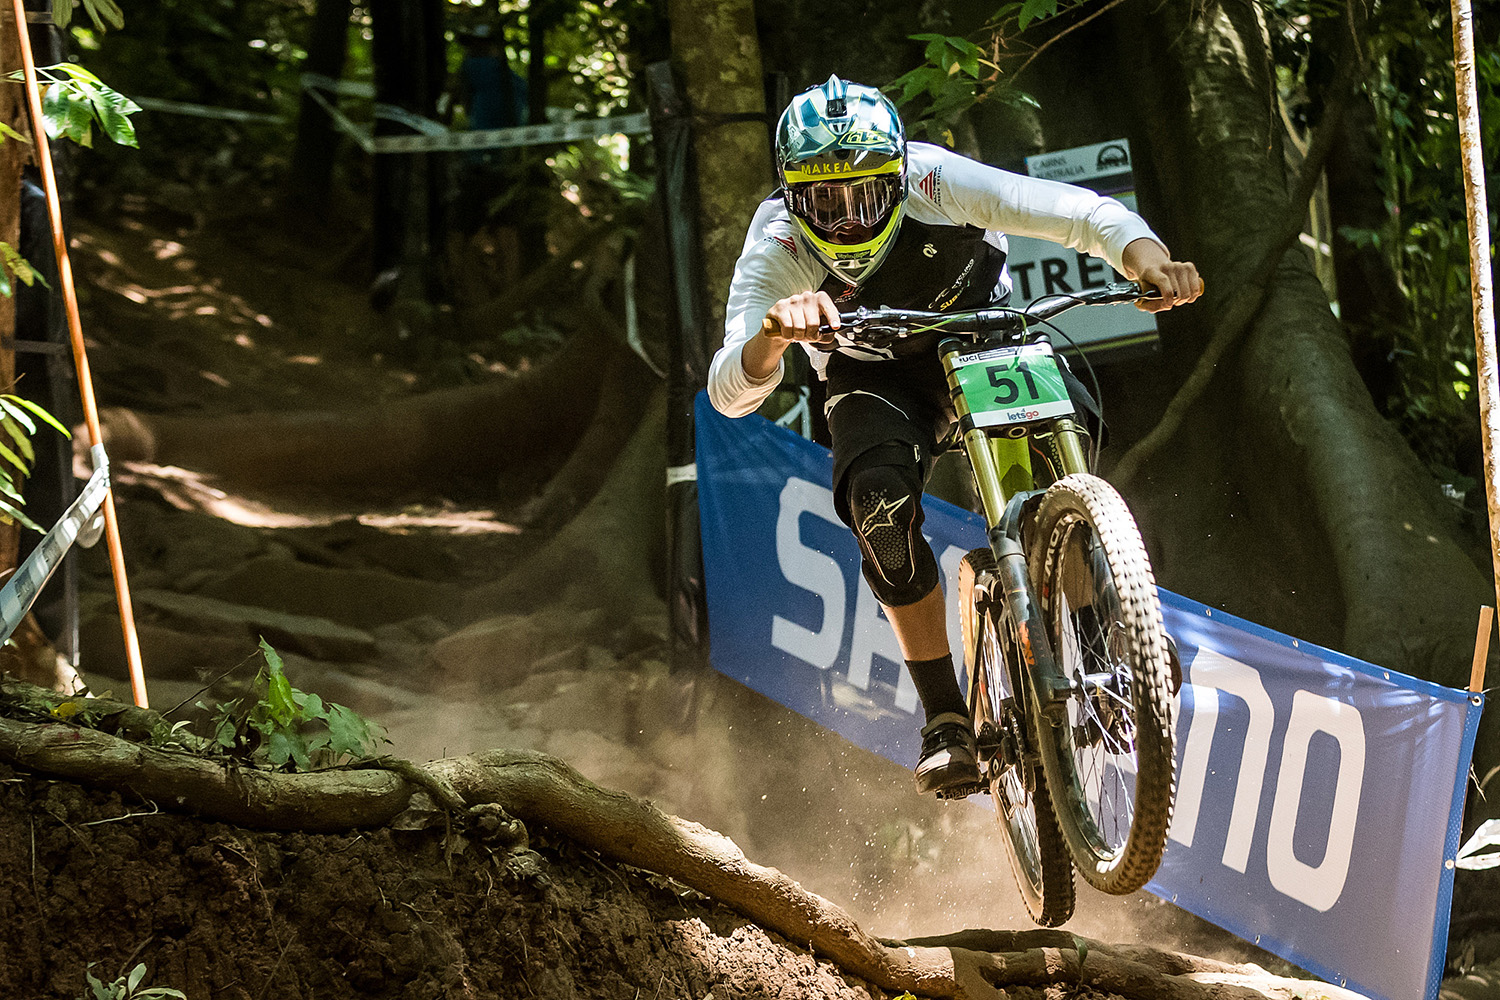 Charlie Makea looked good in seeding but couldn't bring it together on race day